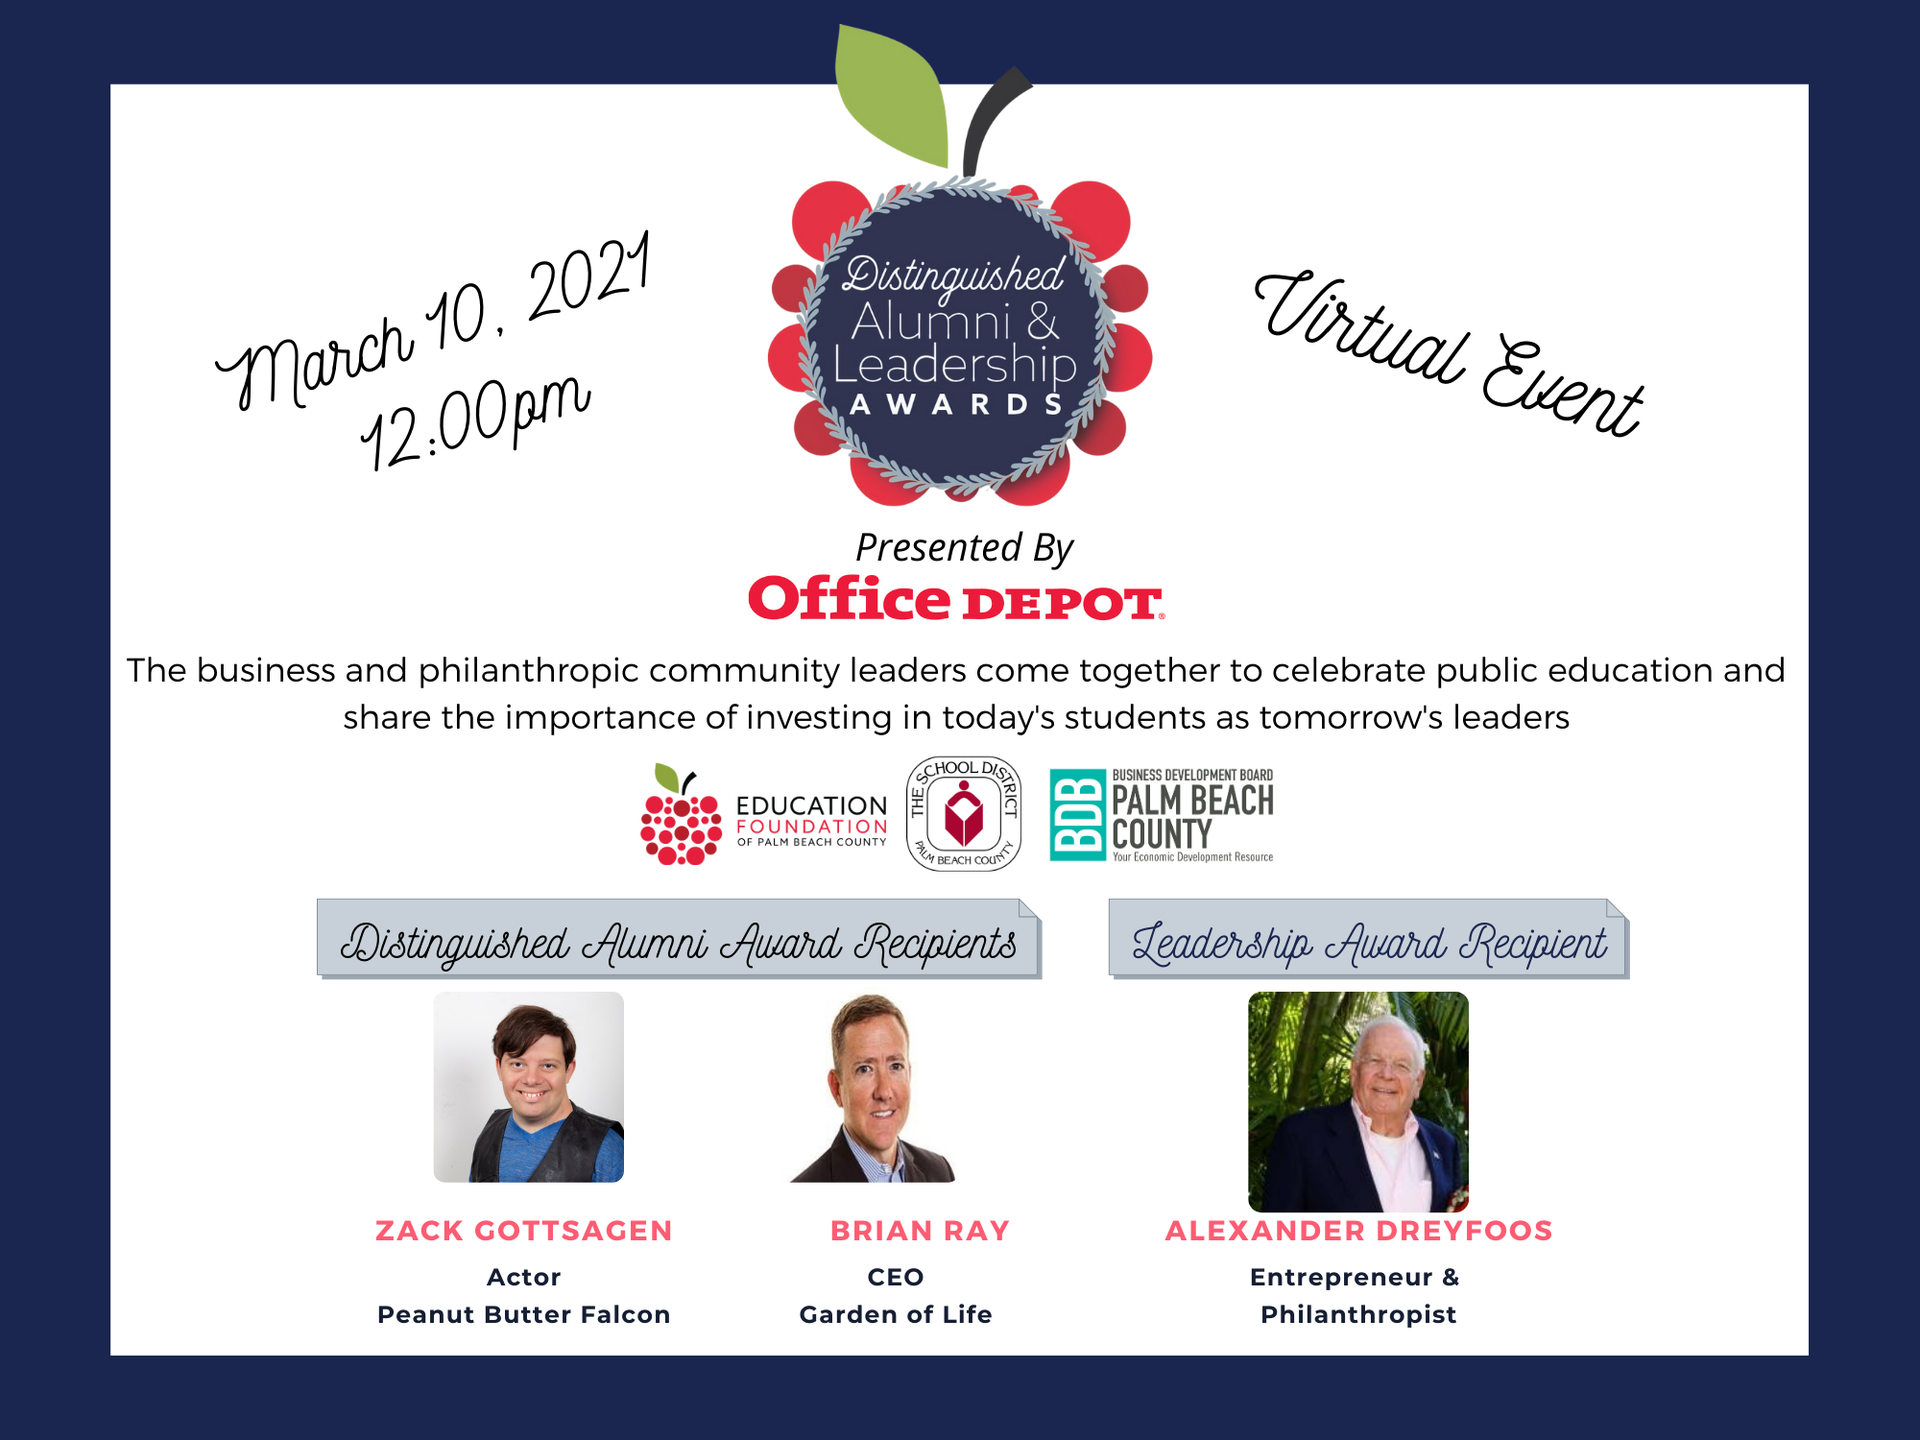 Save the Date, Distinguished Alumni & Leadership Awards, March 10, 2021 12pm, Virtual